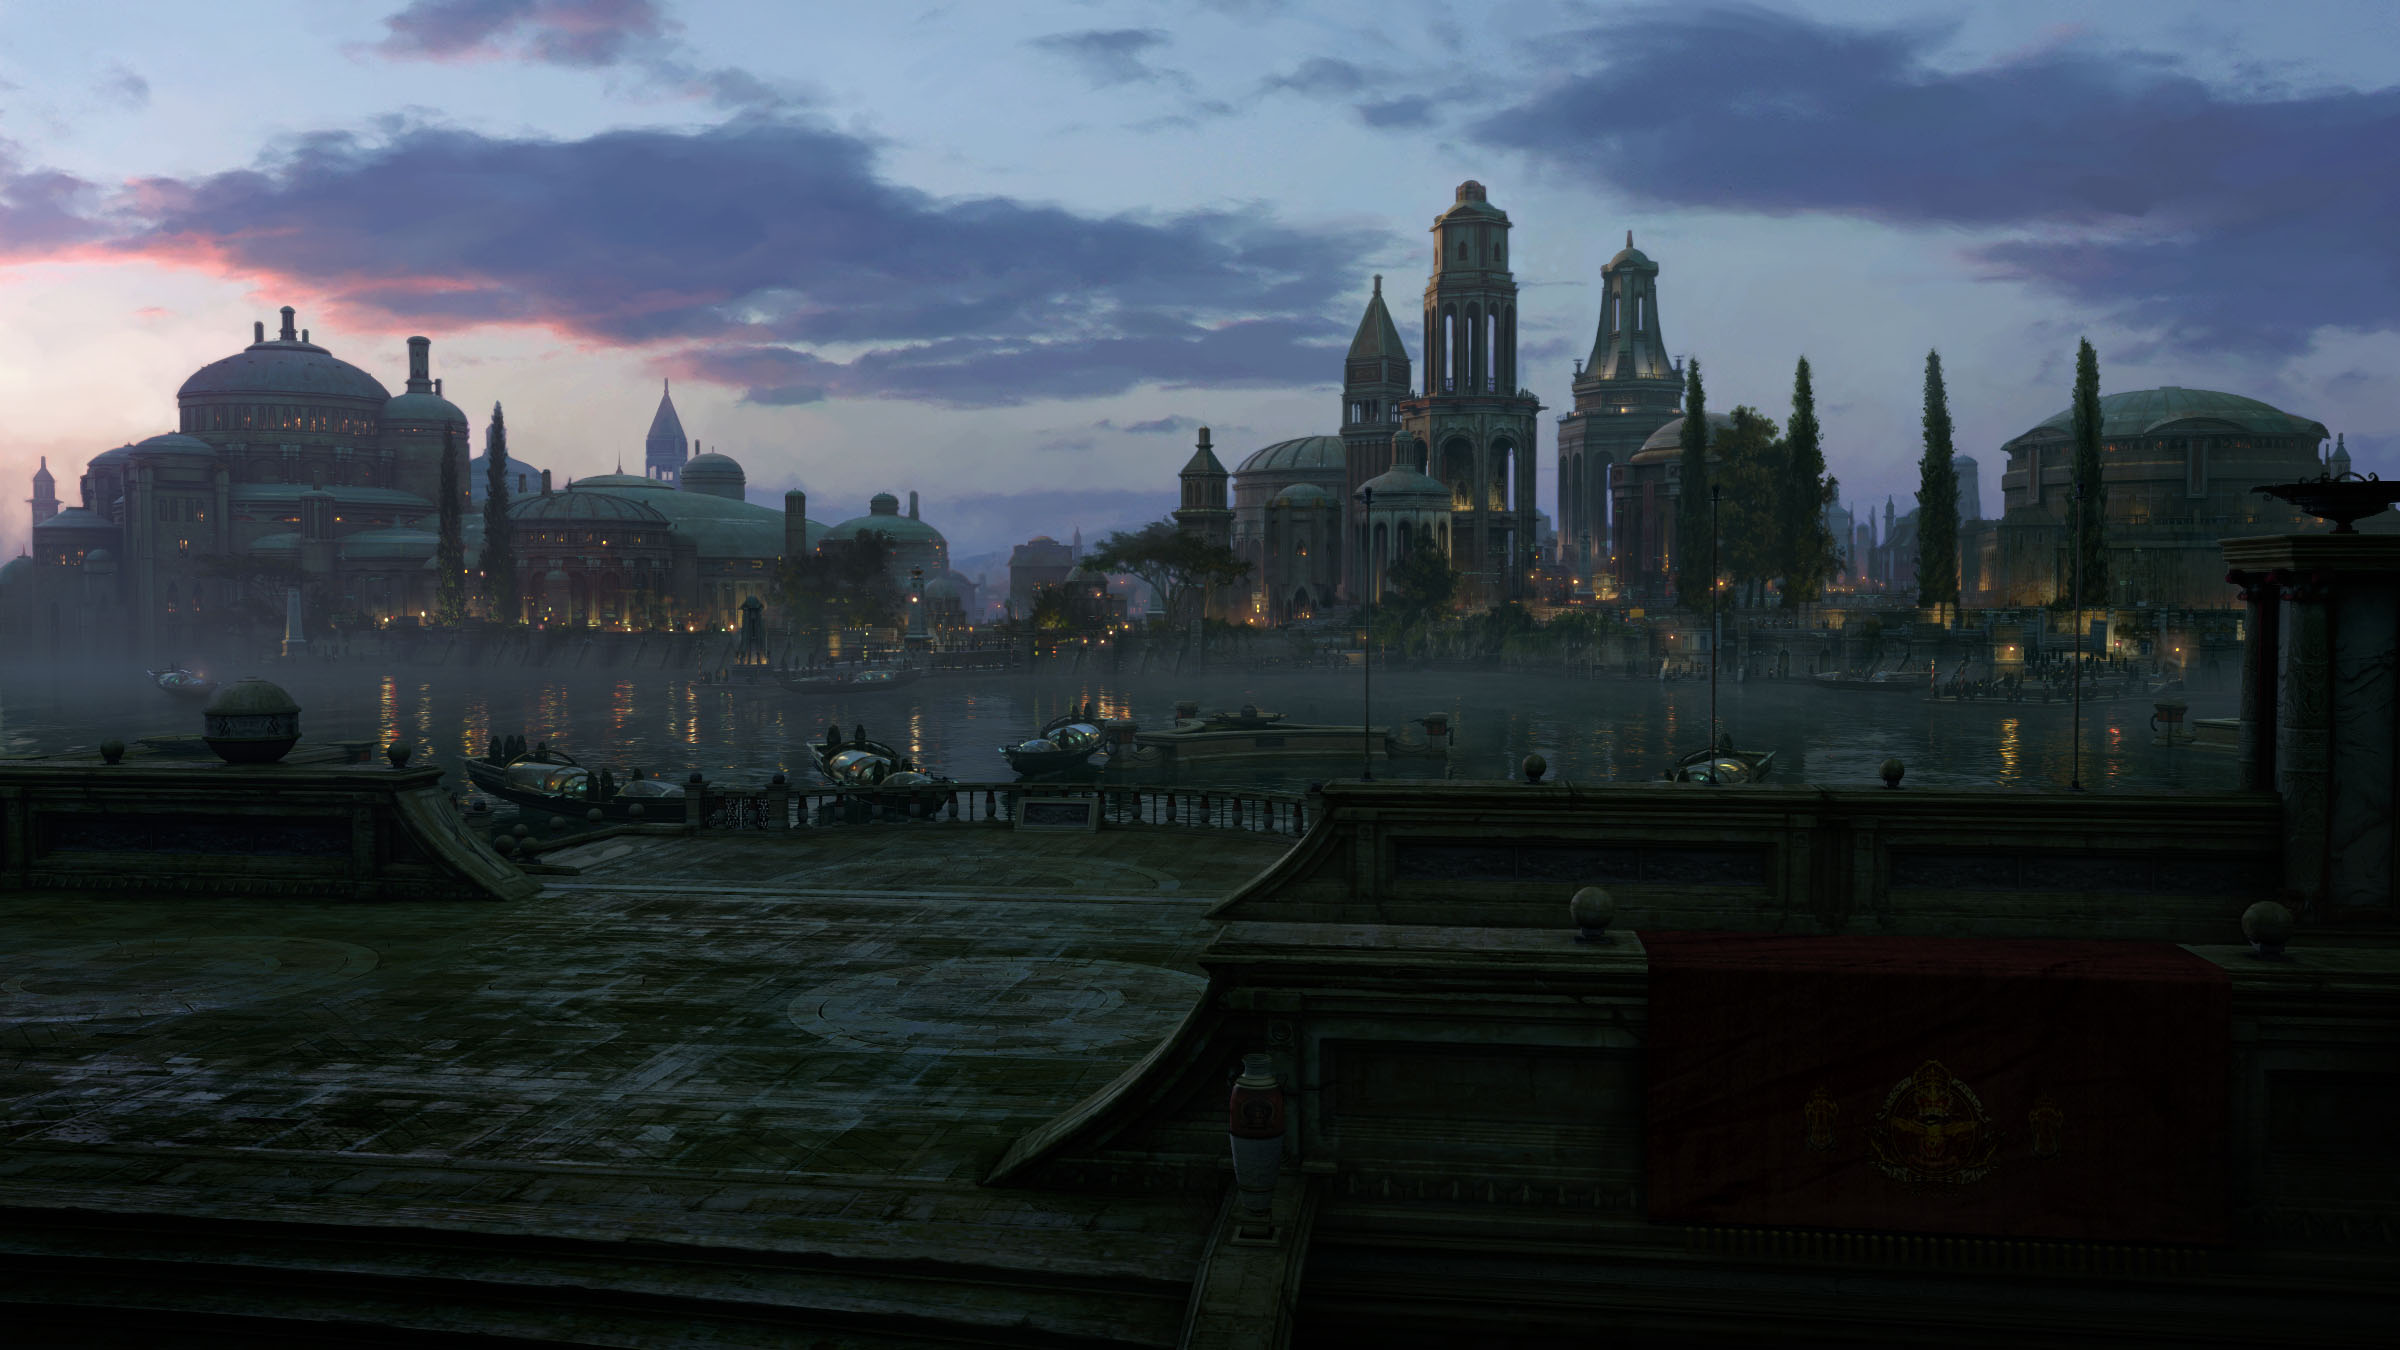 Theed_at_sunset.jpg